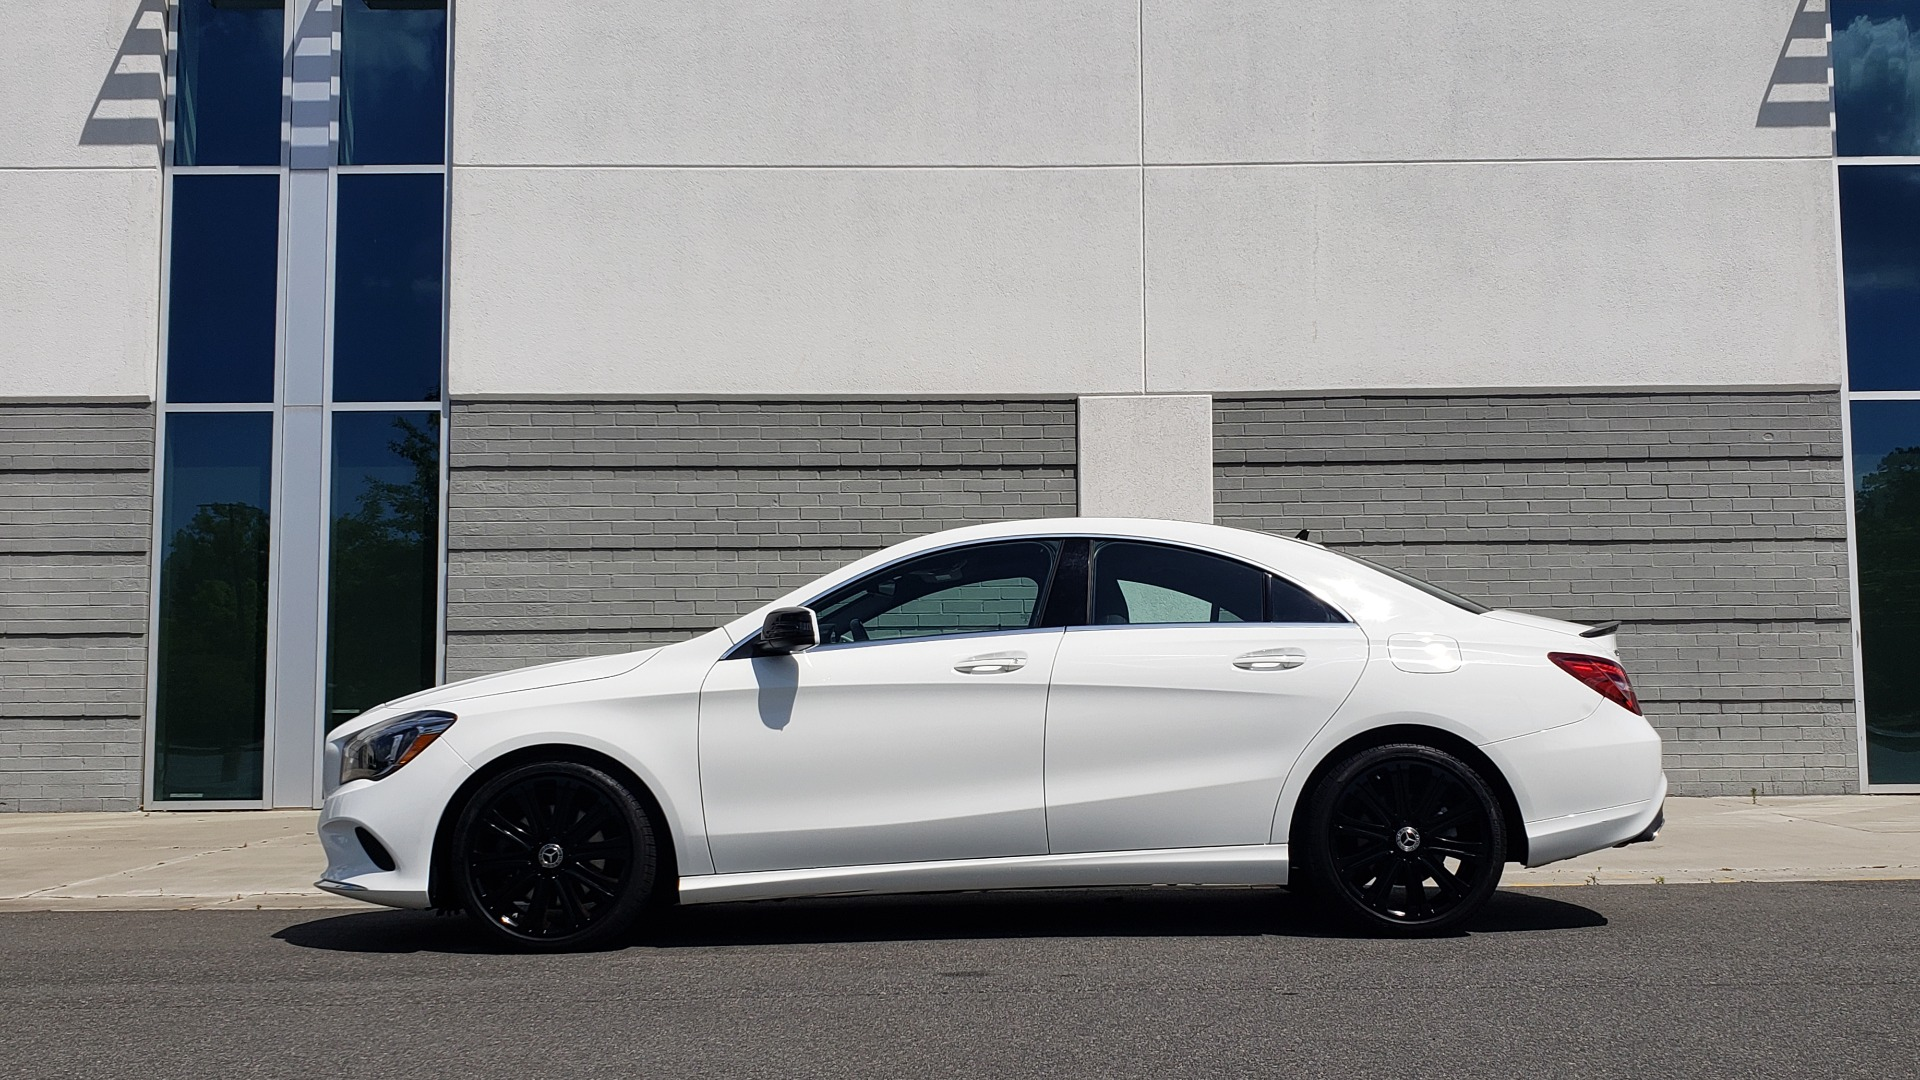 Used 2018 Mercedes-Benz CLA 250 4MATIC COUPE / PREMIUM / PANO-ROOF / APPLE / REARVIEW for sale Sold at Formula Imports in Charlotte NC 28227 5